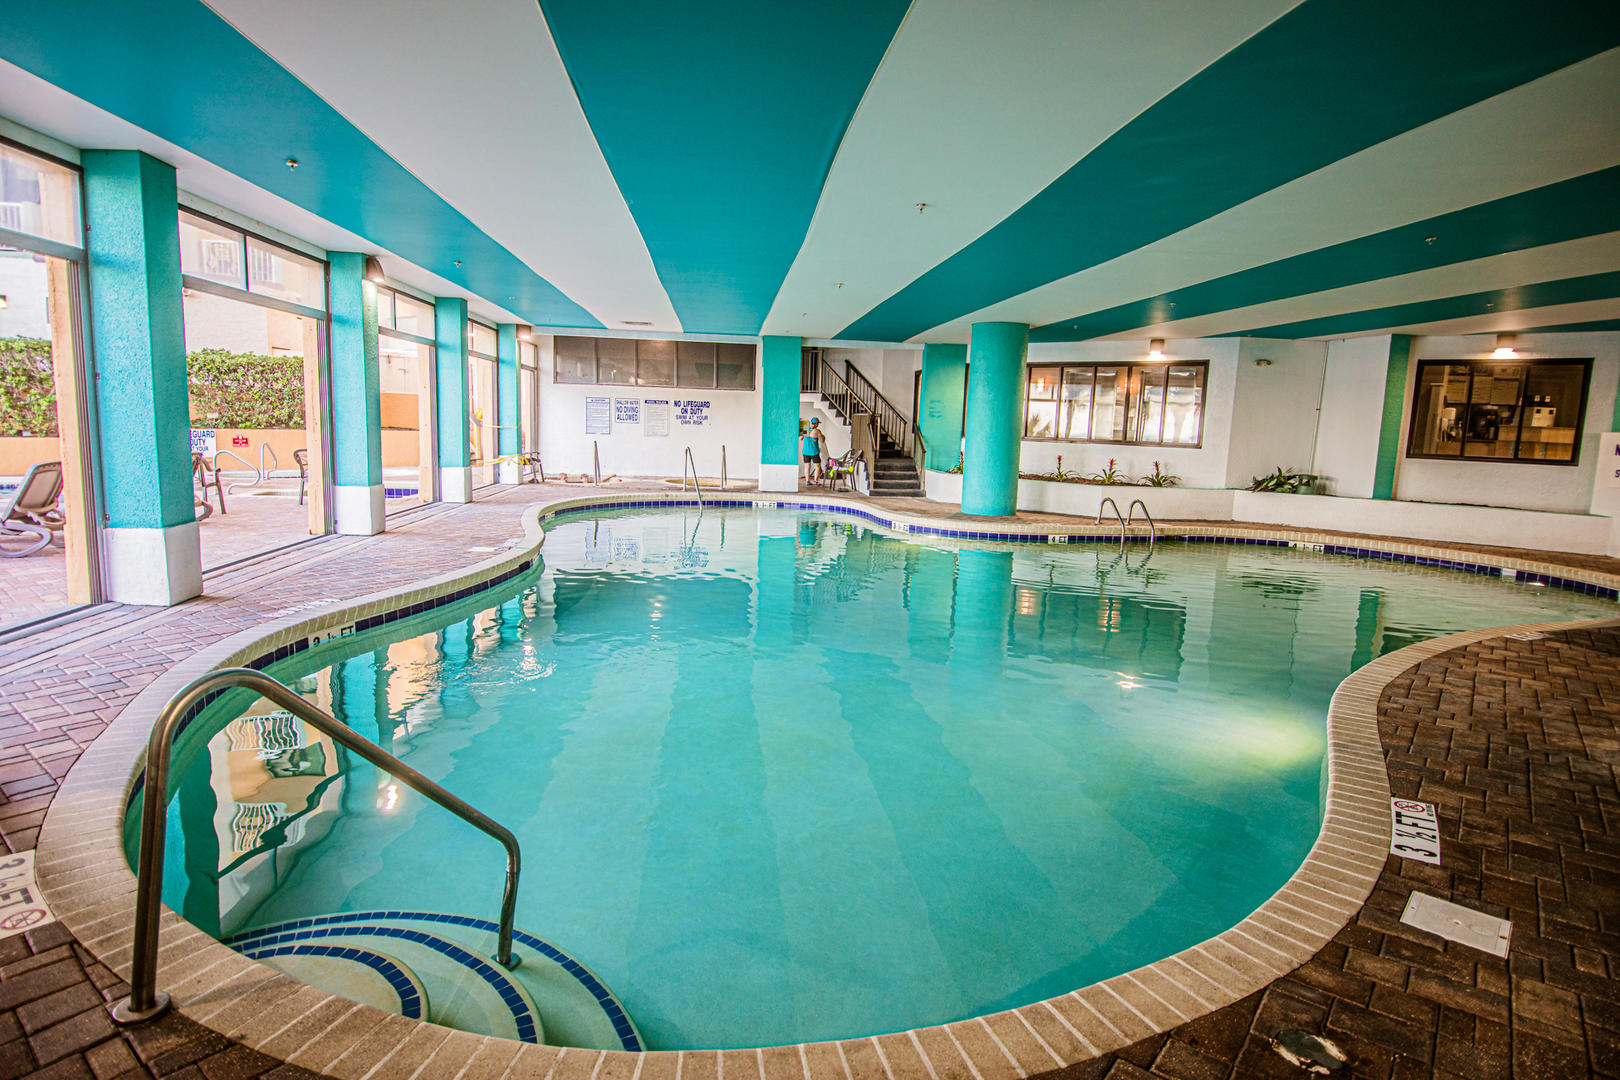 Patricia Grand Indoor Pool